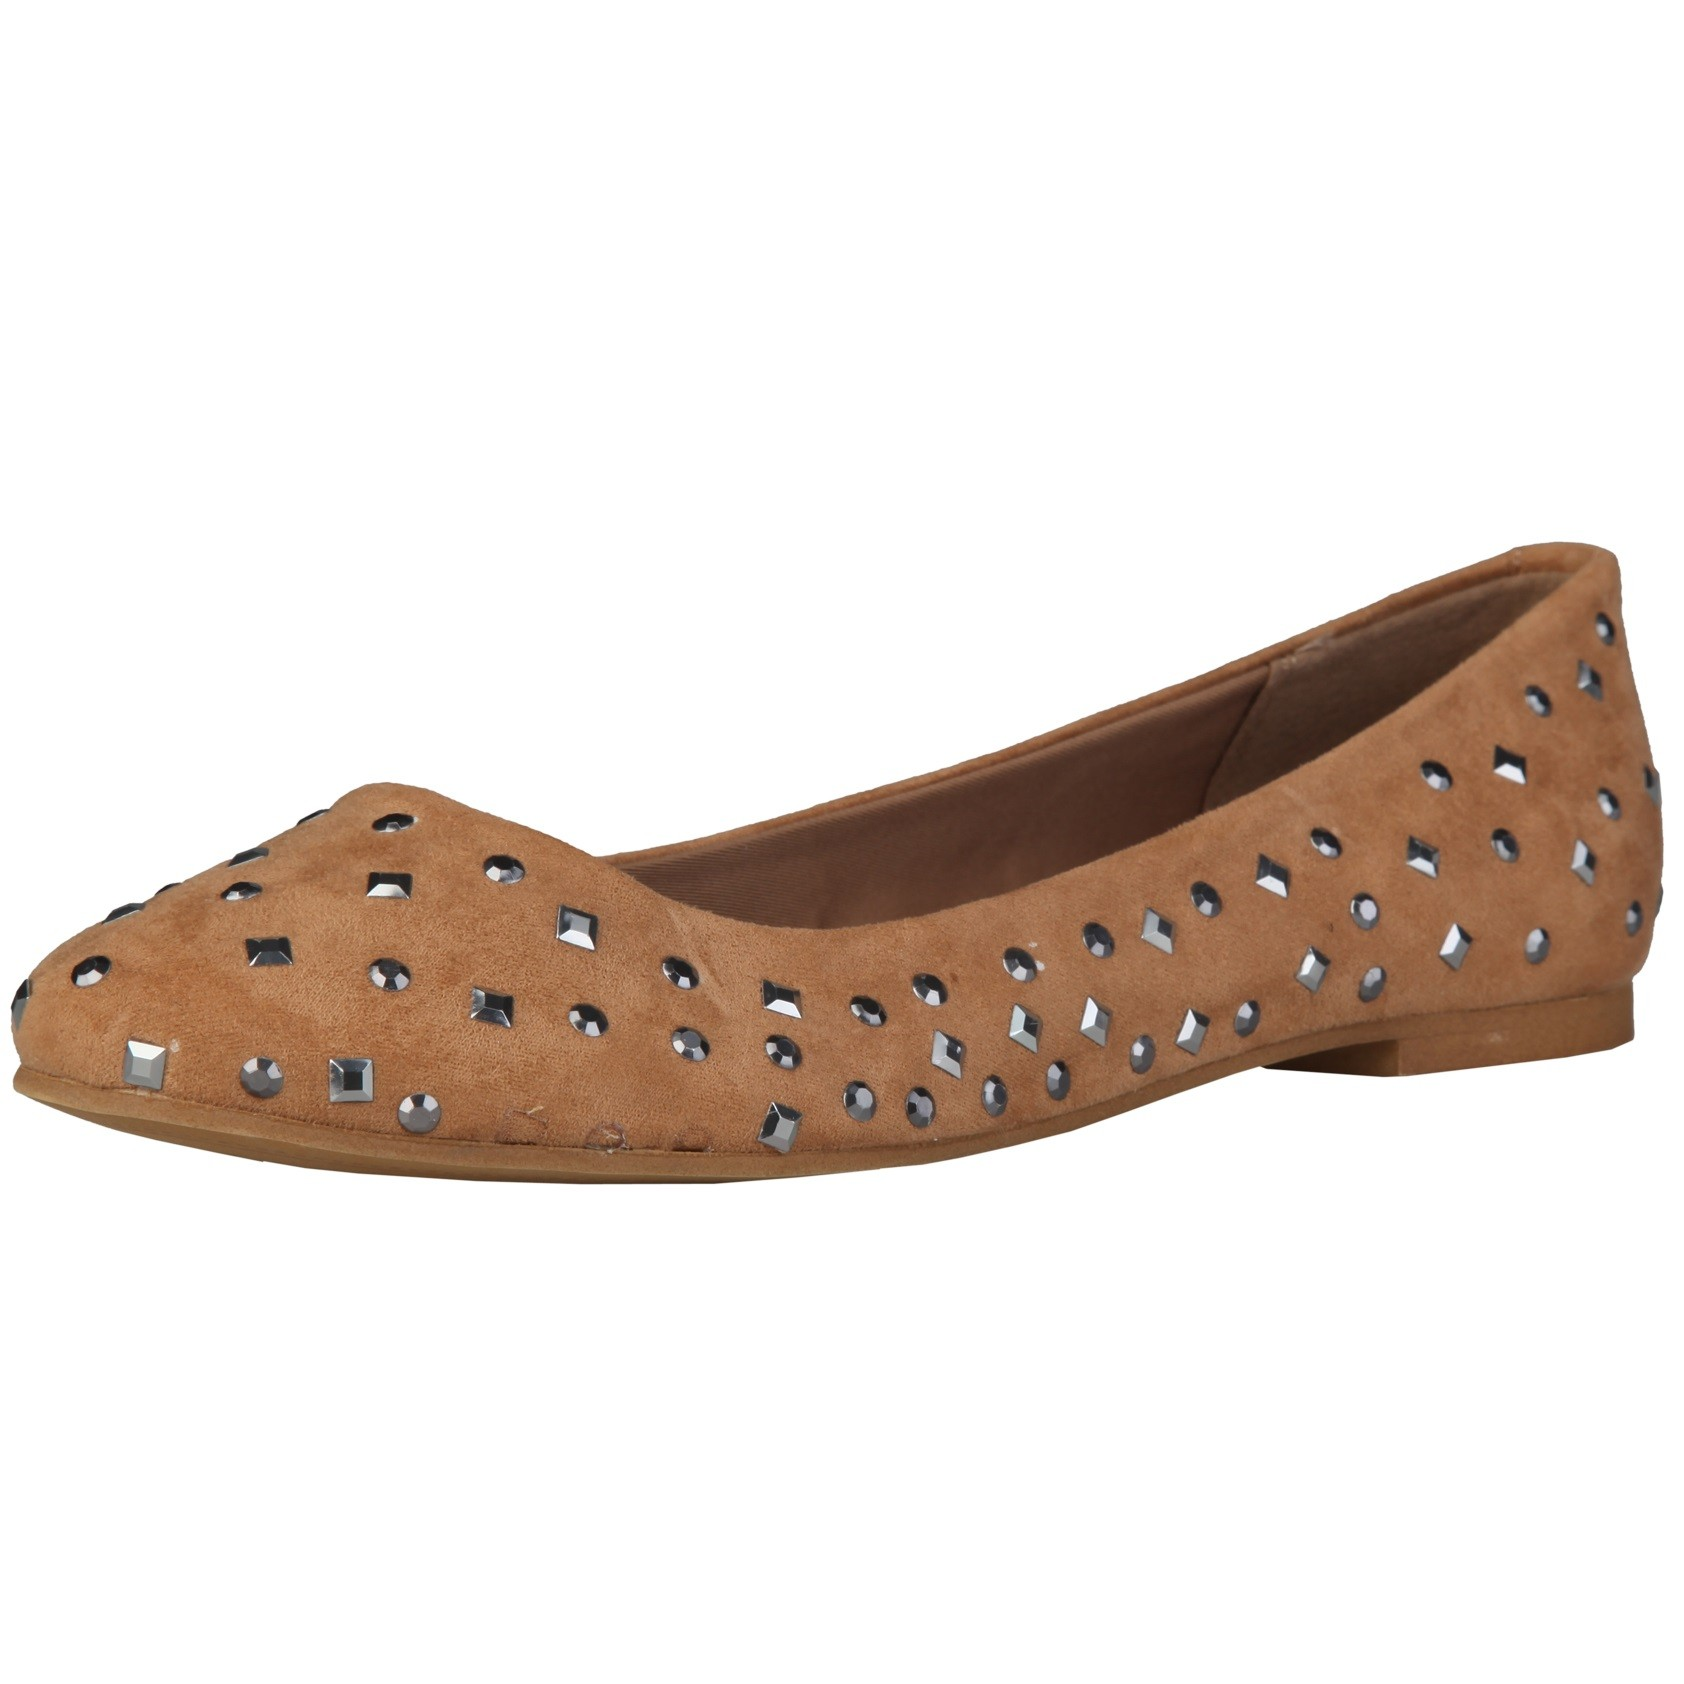 Sofia Loes Flat Shoes Cuoio Rf600151